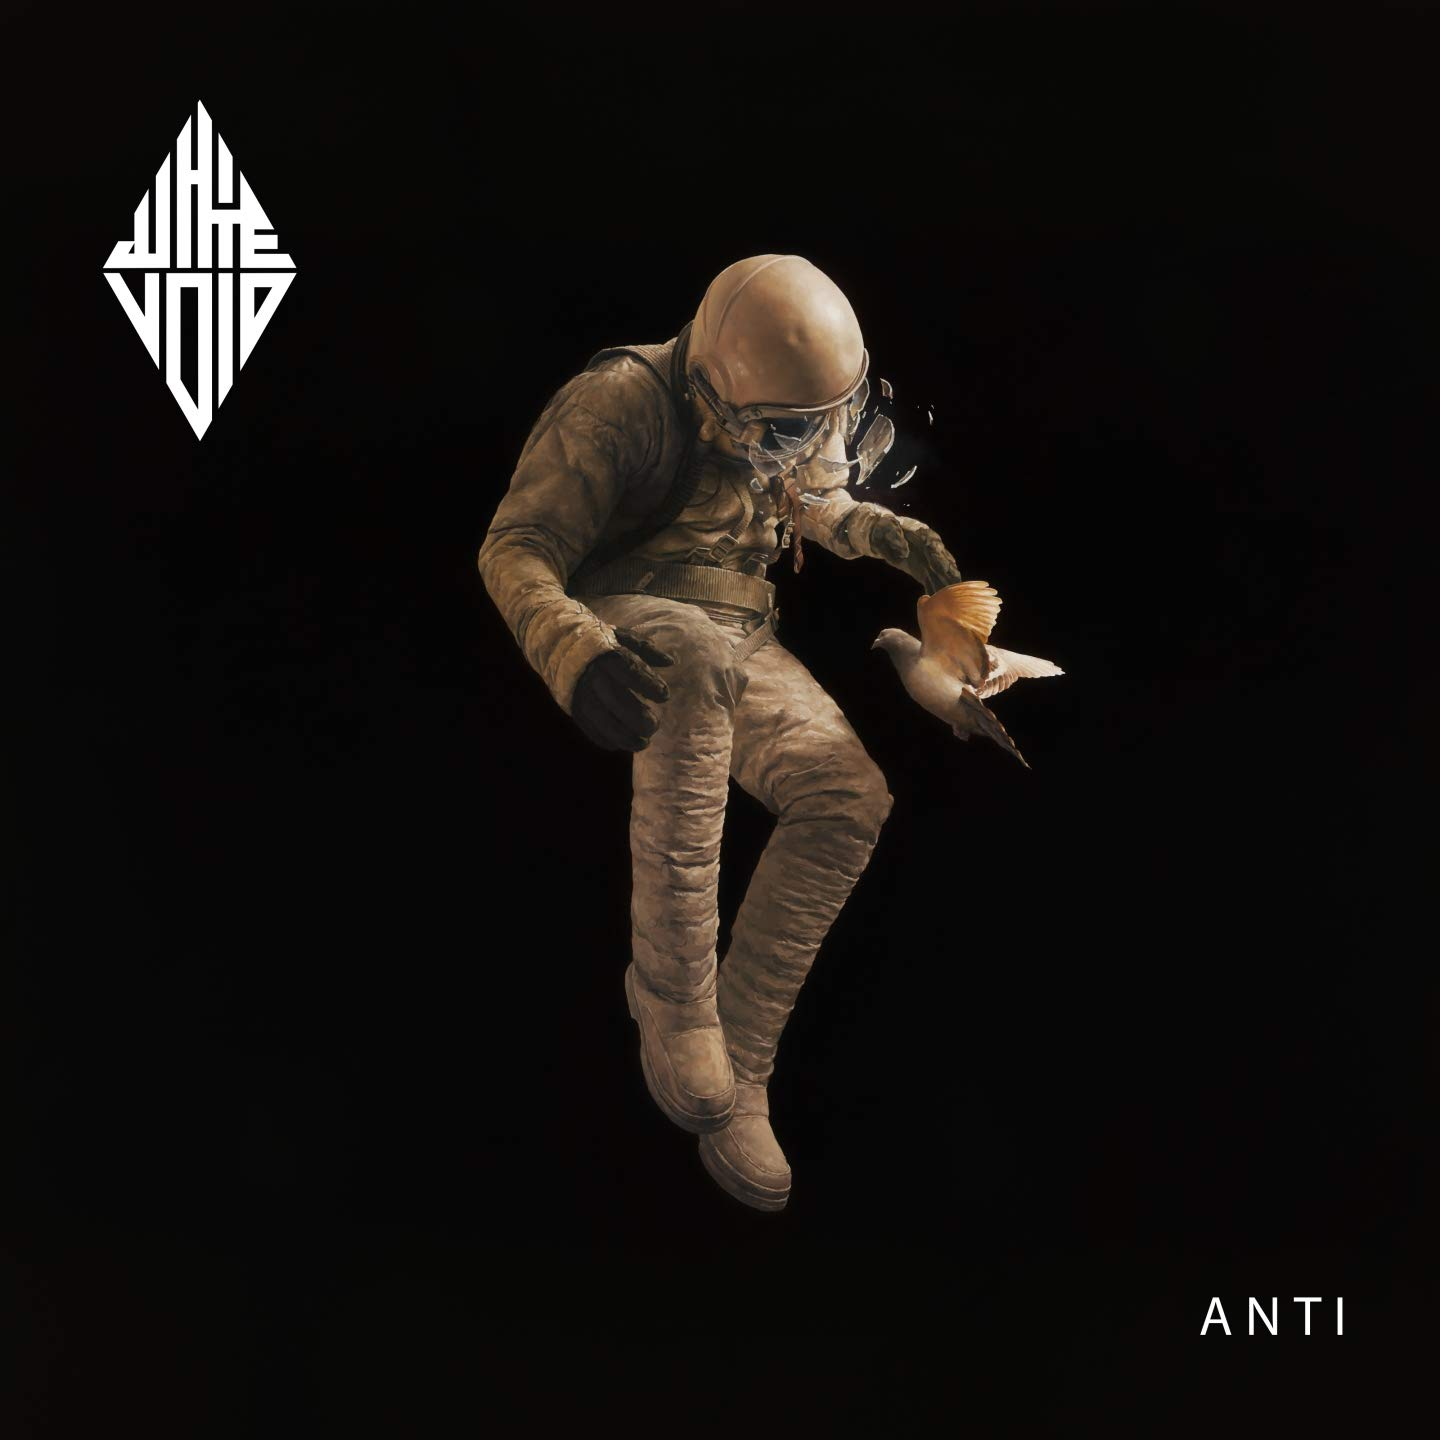 White Void - Anti (2021) [FLAC] Download